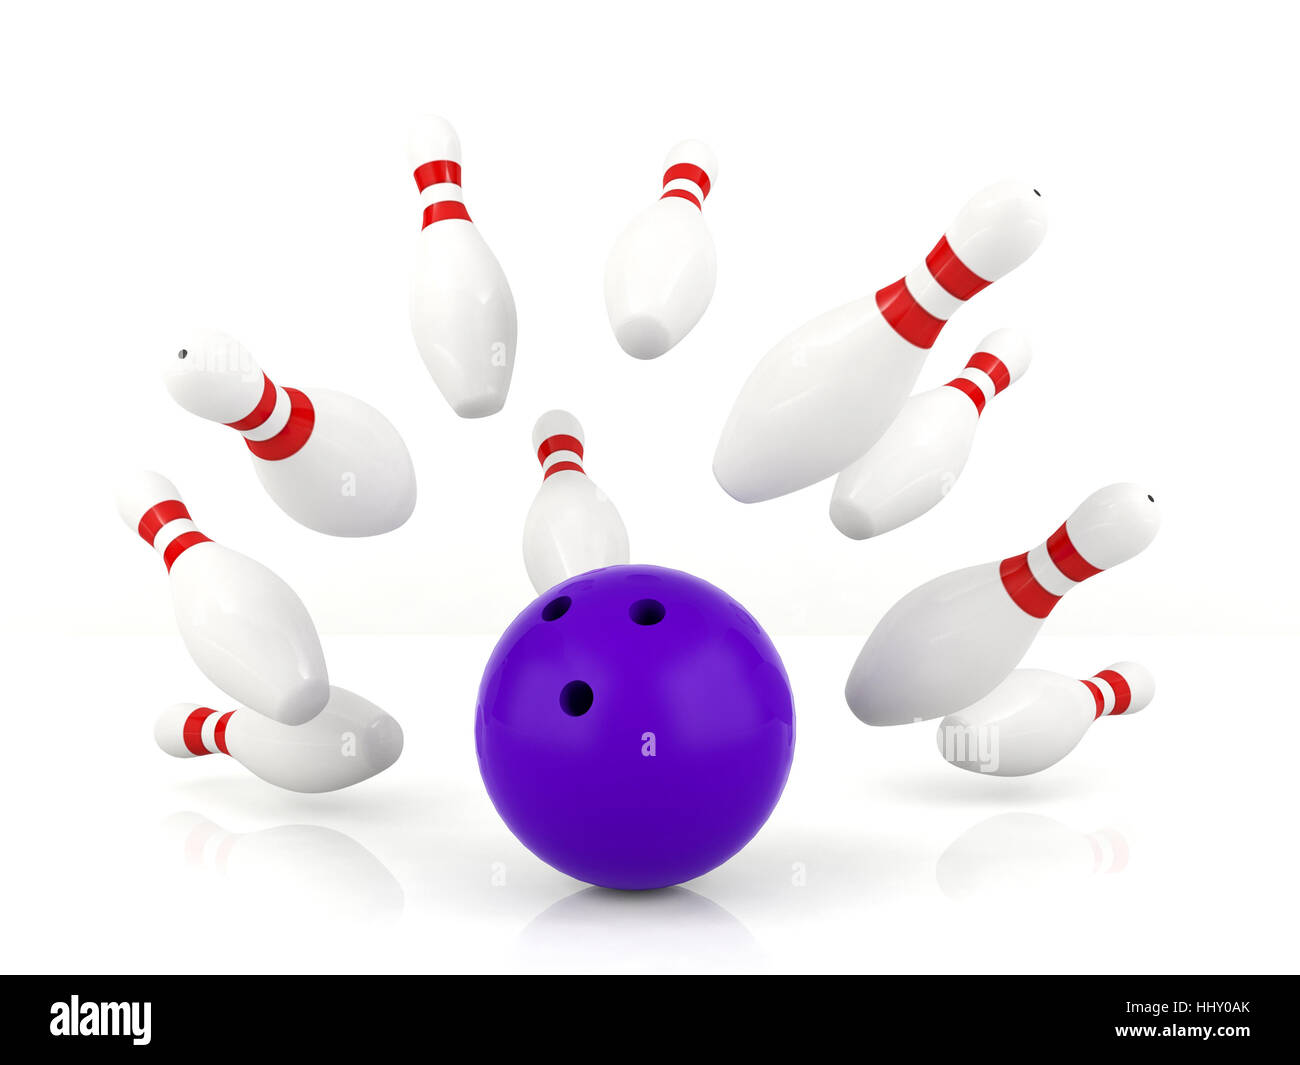 Ball crashing into the bowling pins - Stock Image